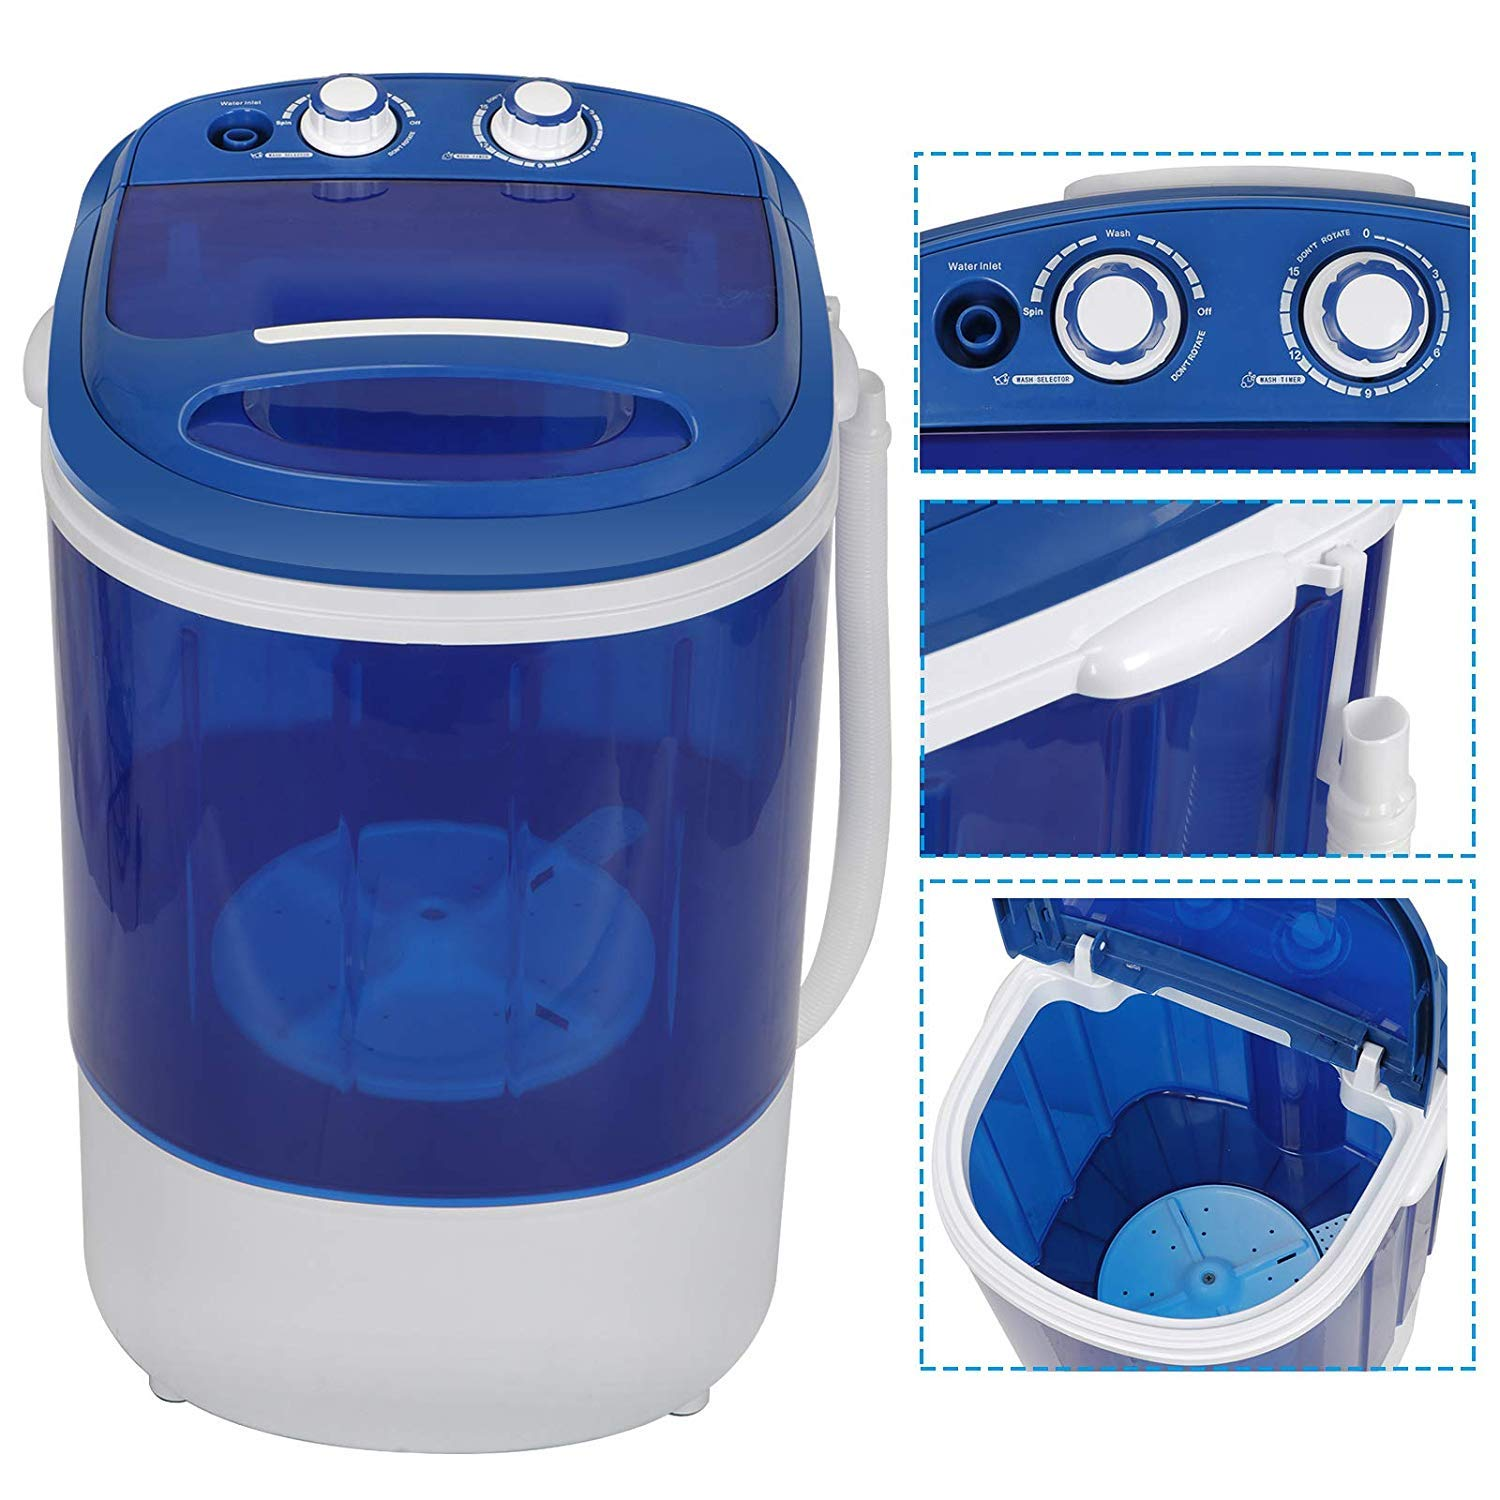 HomGarden 8.8lbs Capacity Mini Washing Machine for Compact Laundry, Portable Single Translucent Tub Washer with Timer Control and Spin Cycle Basket by HomGarden